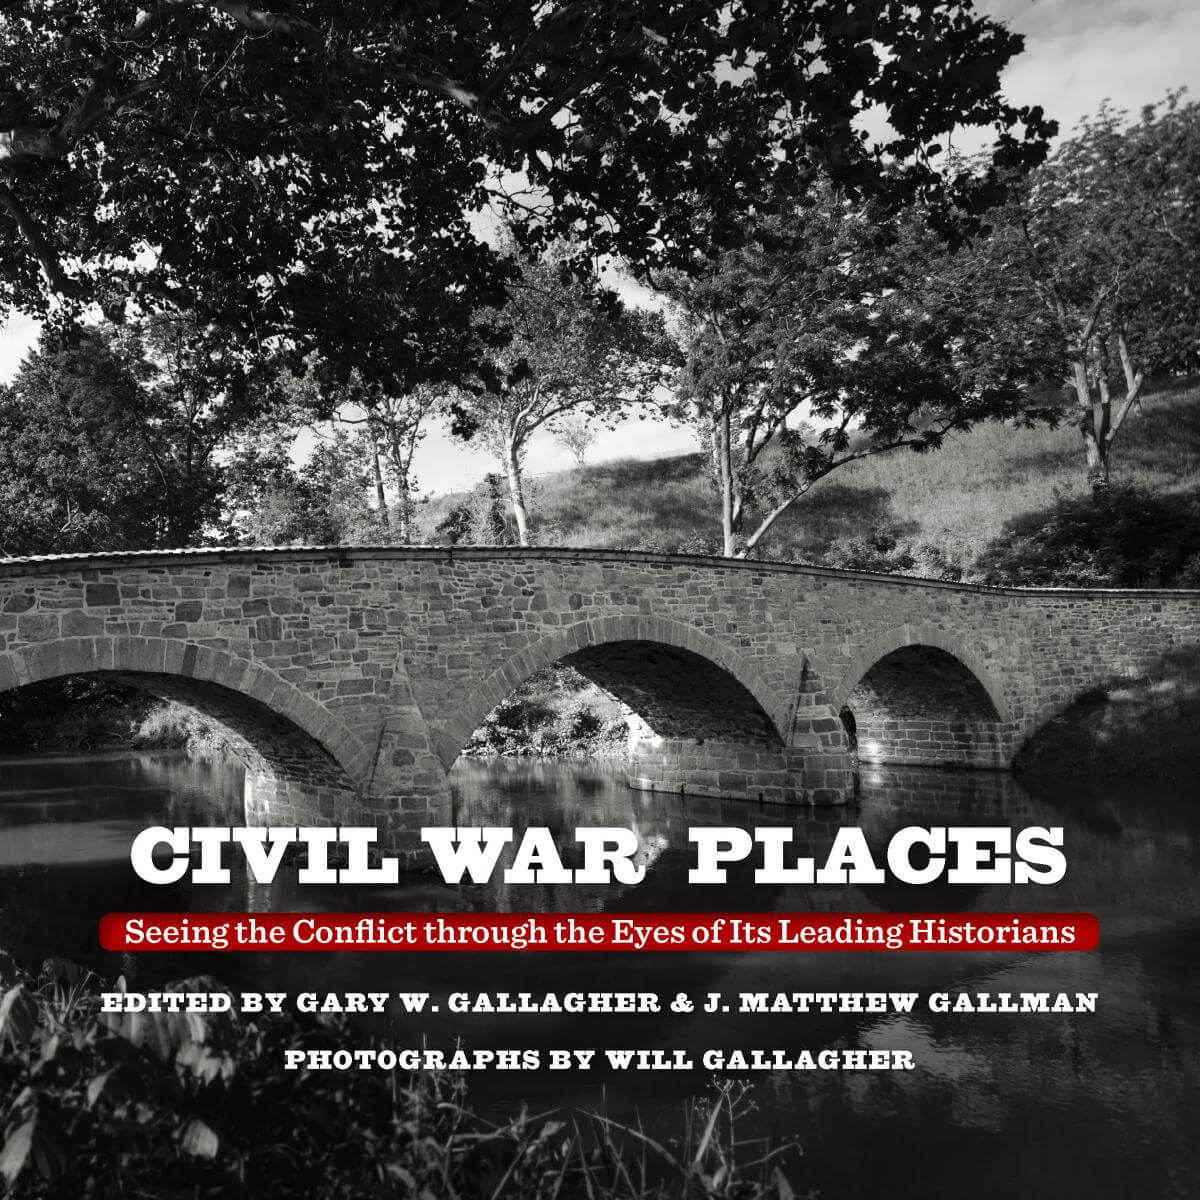 Cover, Civil War Places: Seeing the Conflict through the Eyes of Its Leading Historians